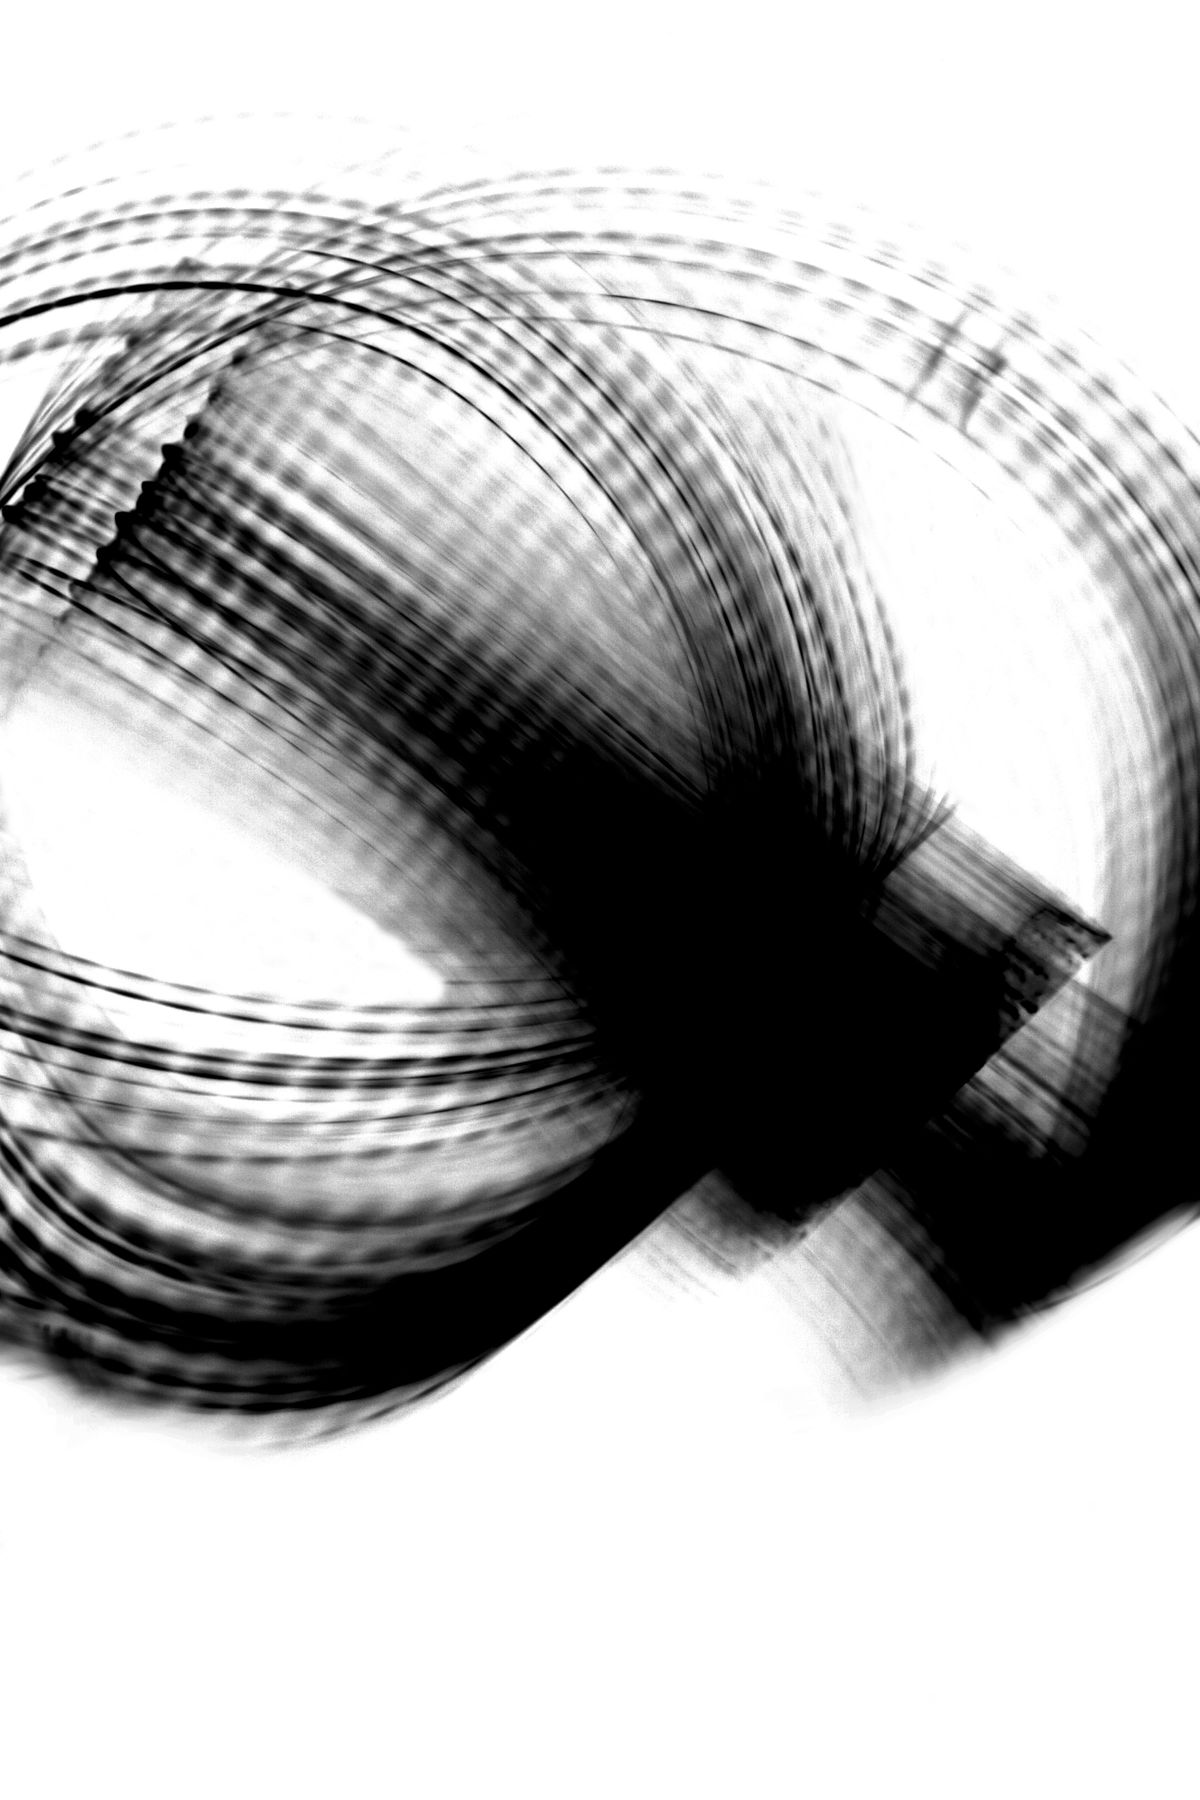 Lucifer Lights, 2008, Black and White Abstract Photography, Shirine Gill